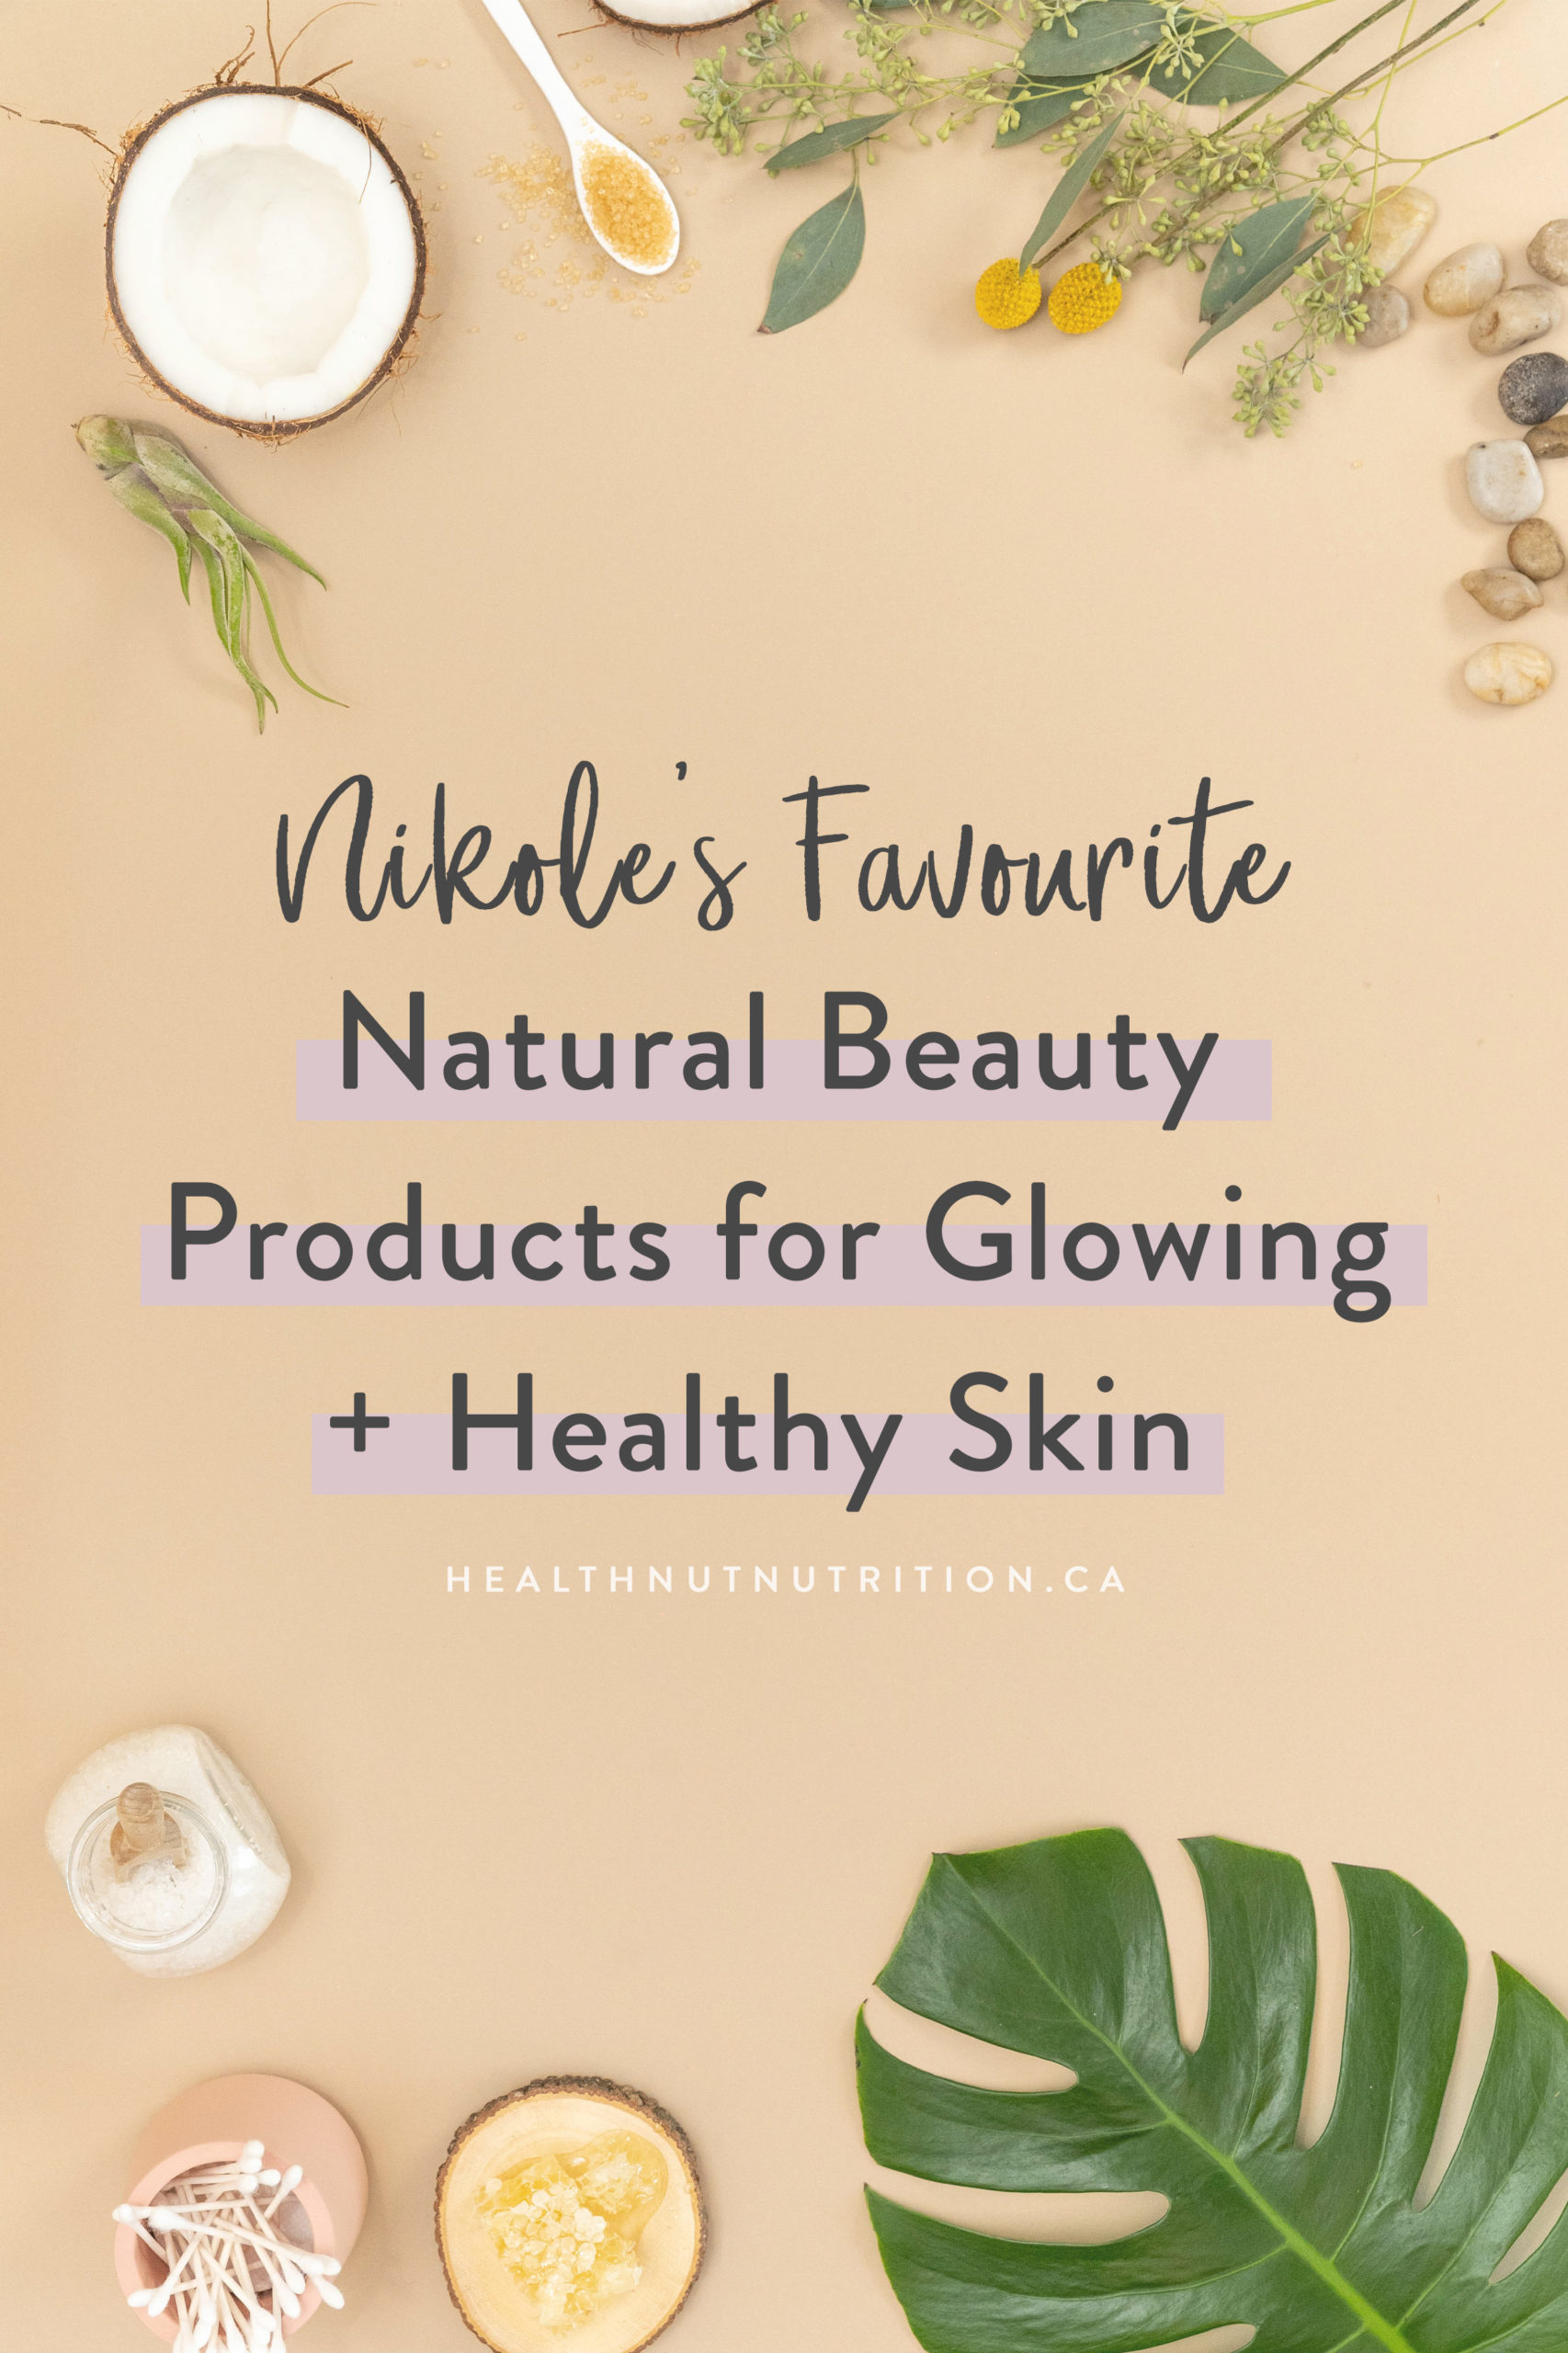 Favourite Natural Beauty Products for Glowing + Healthy Skin